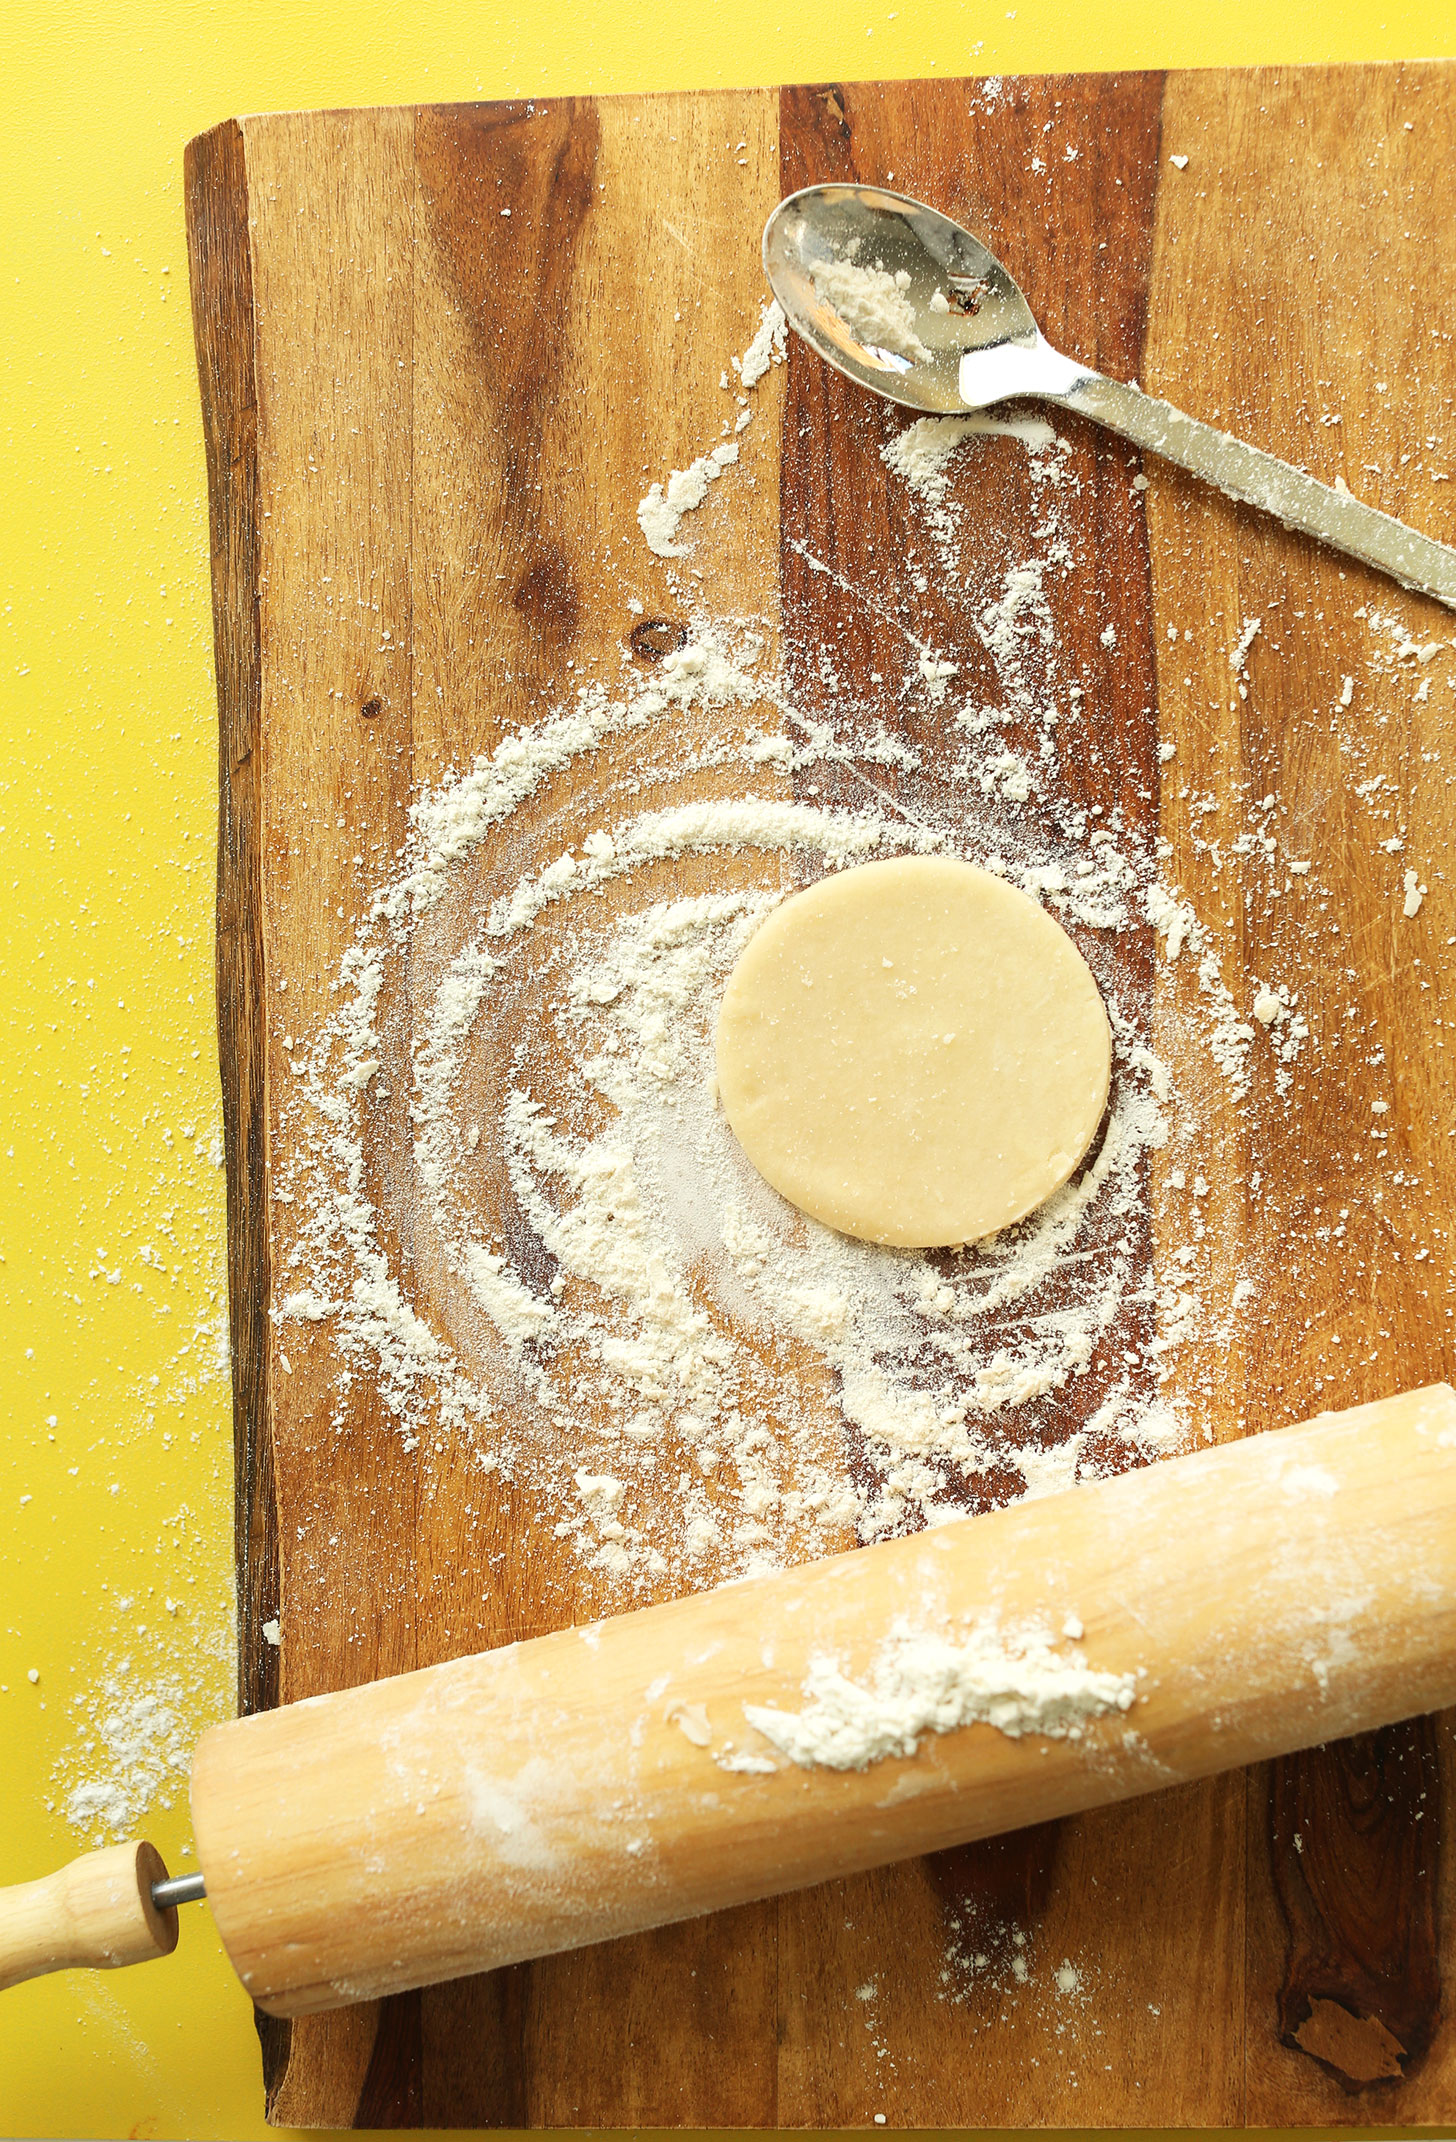 Using a rolling pin to roll out Coconut Oil Pie Crust